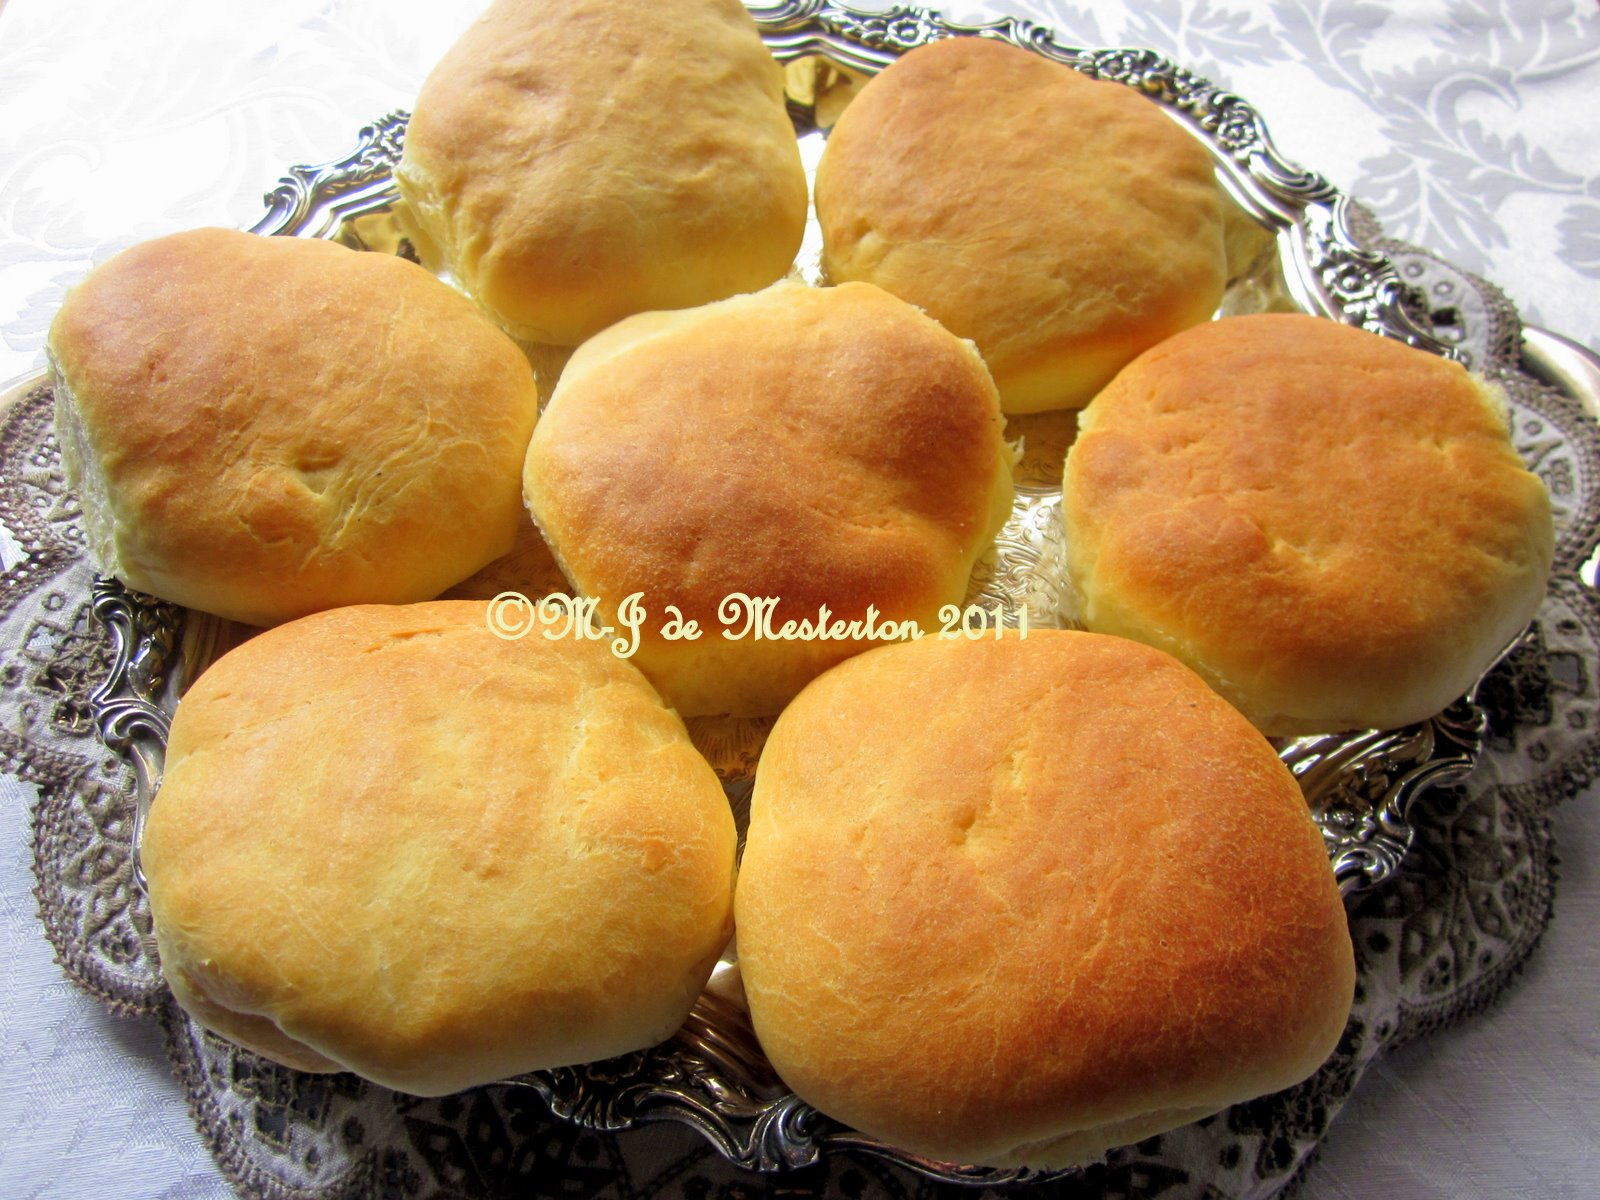 Brioche buns made for hamburgers by M-J sit atop a Countess silver